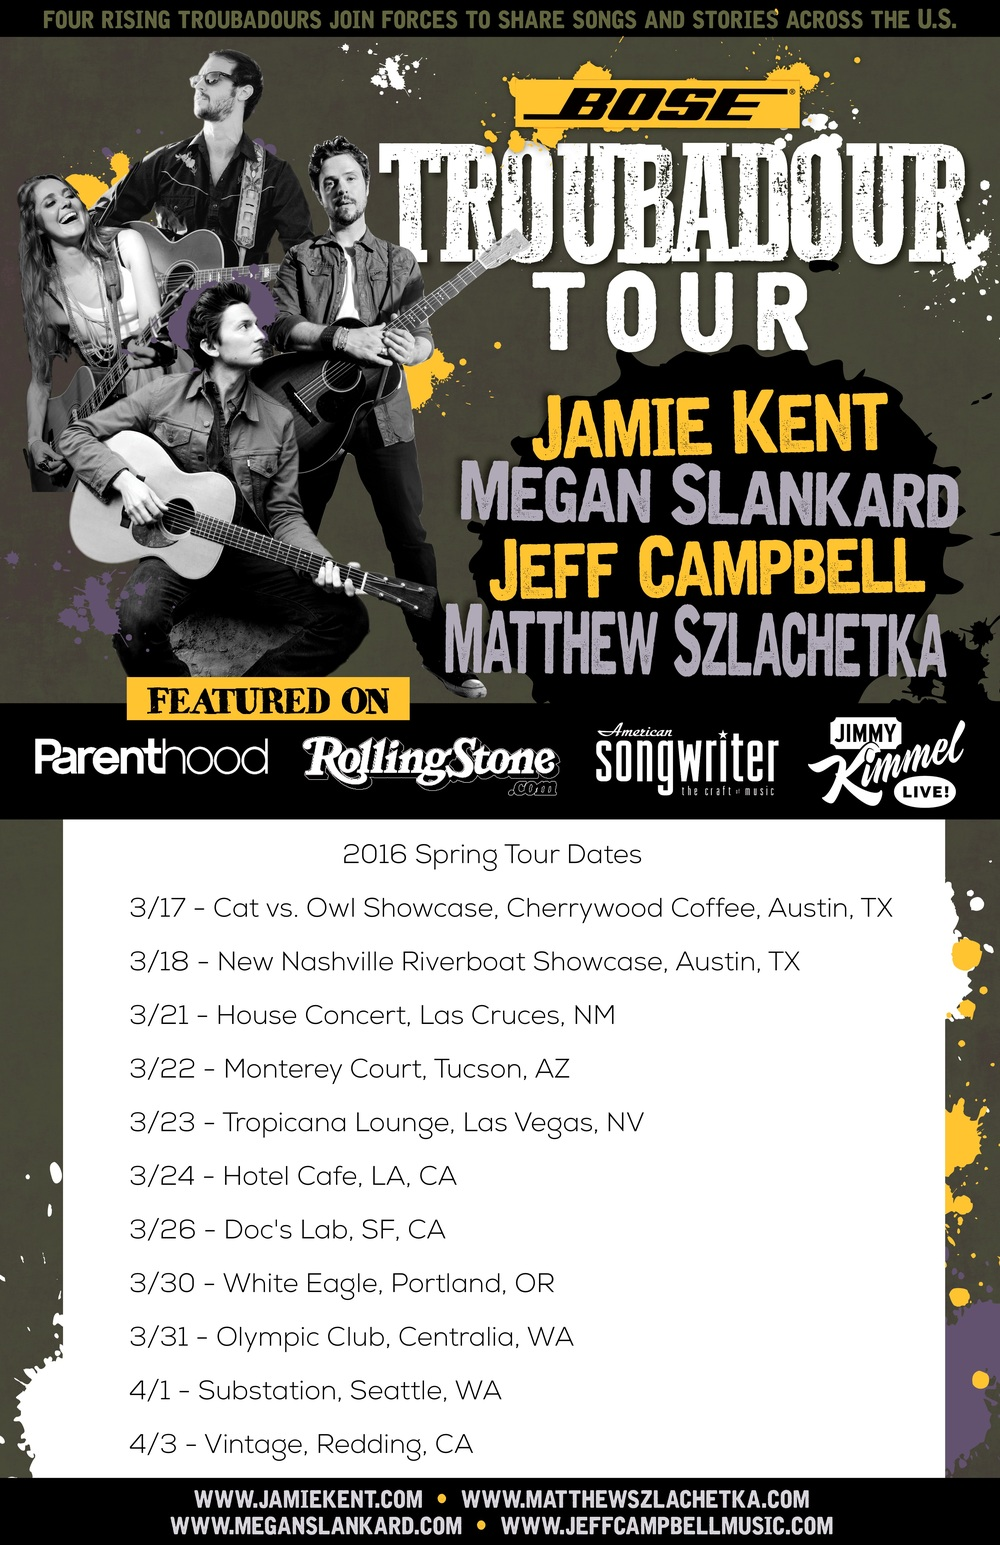 Bose Troubadour Tour on the West Coast Last year, Jamie Kent, Megan Slankard, Matthew Szlachetka and myself hit the road with support from our amazing friends at the Bose Live Music Team and did over 20 dates in the Eastern half of the US. As promised, we're bringing the mayhem to the Wessssside. Click the image above with all the dates to be magically whisked away to the dates page of my site to get full deets. These shows were a blast last year. Can only imagine the same this year. Look for some summer dates on the East Coast with these guys to be announced soon, as well as some cross country solo/acoustic action TBA.  Thanks all! Jeff